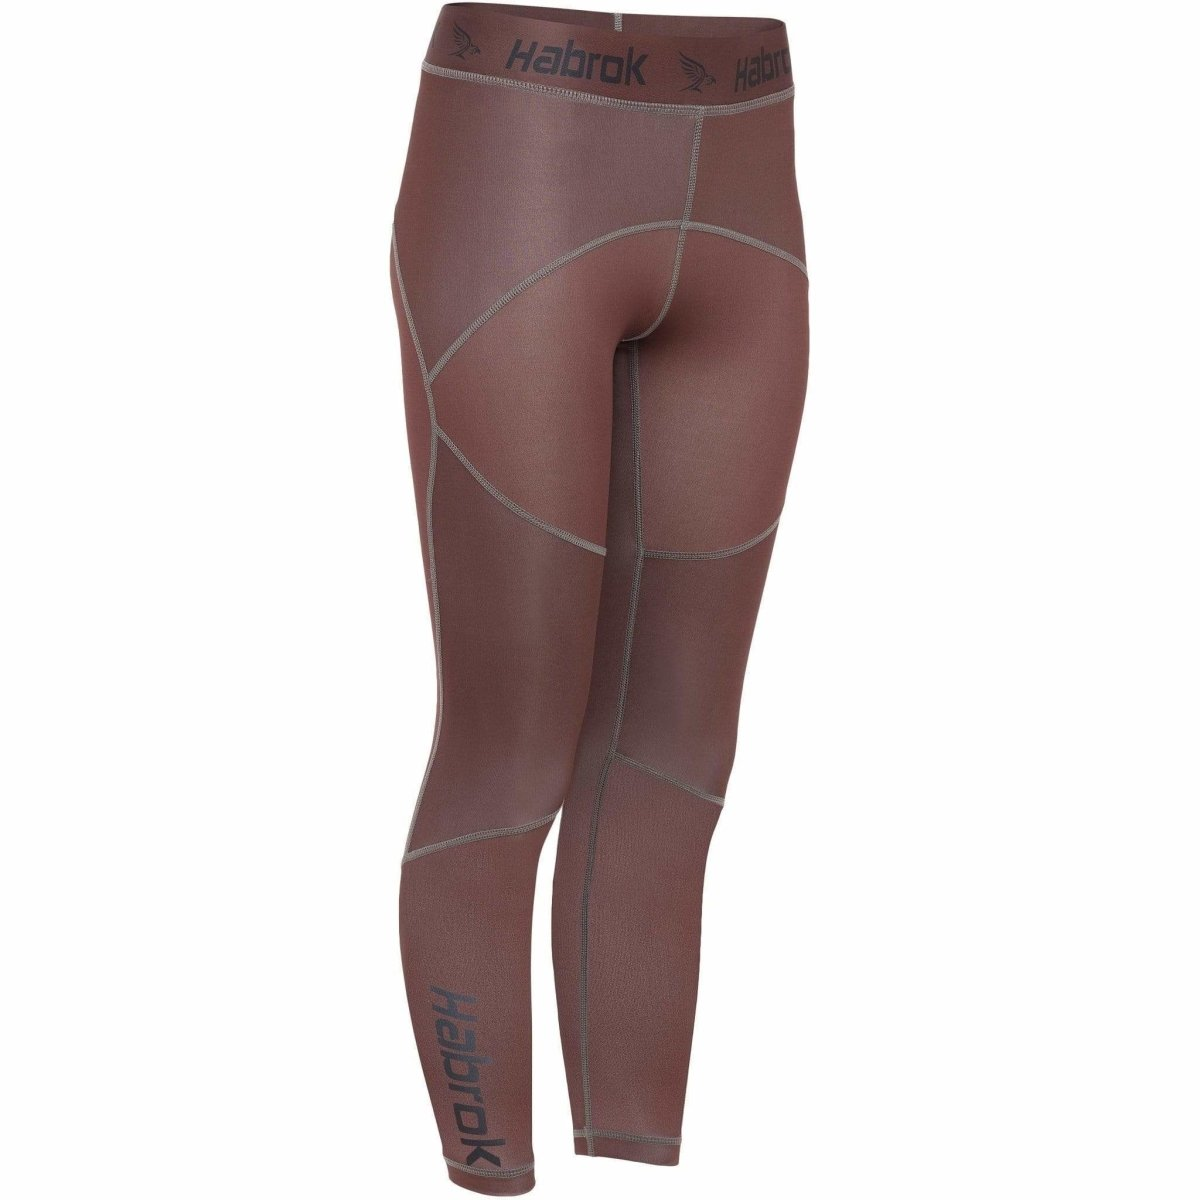 Habrok Spats XS / BROWN Pugnator | Compression Pants | Women | Brown